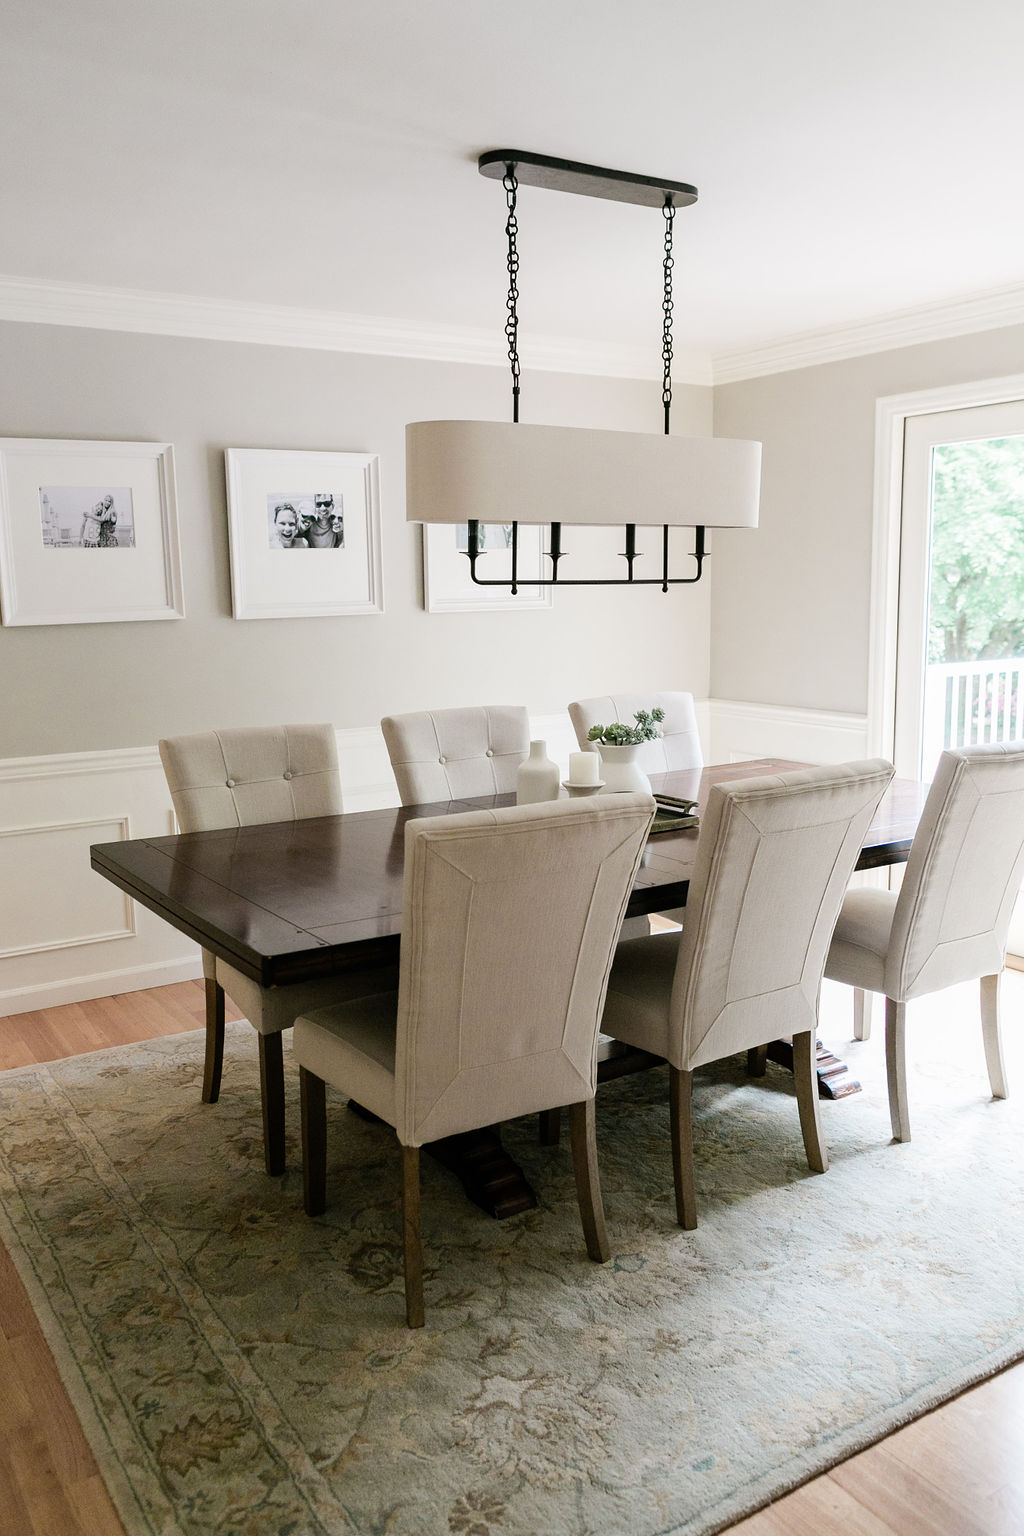 Solid wood dining table with upholstered parson style chairs and white wainscoting.